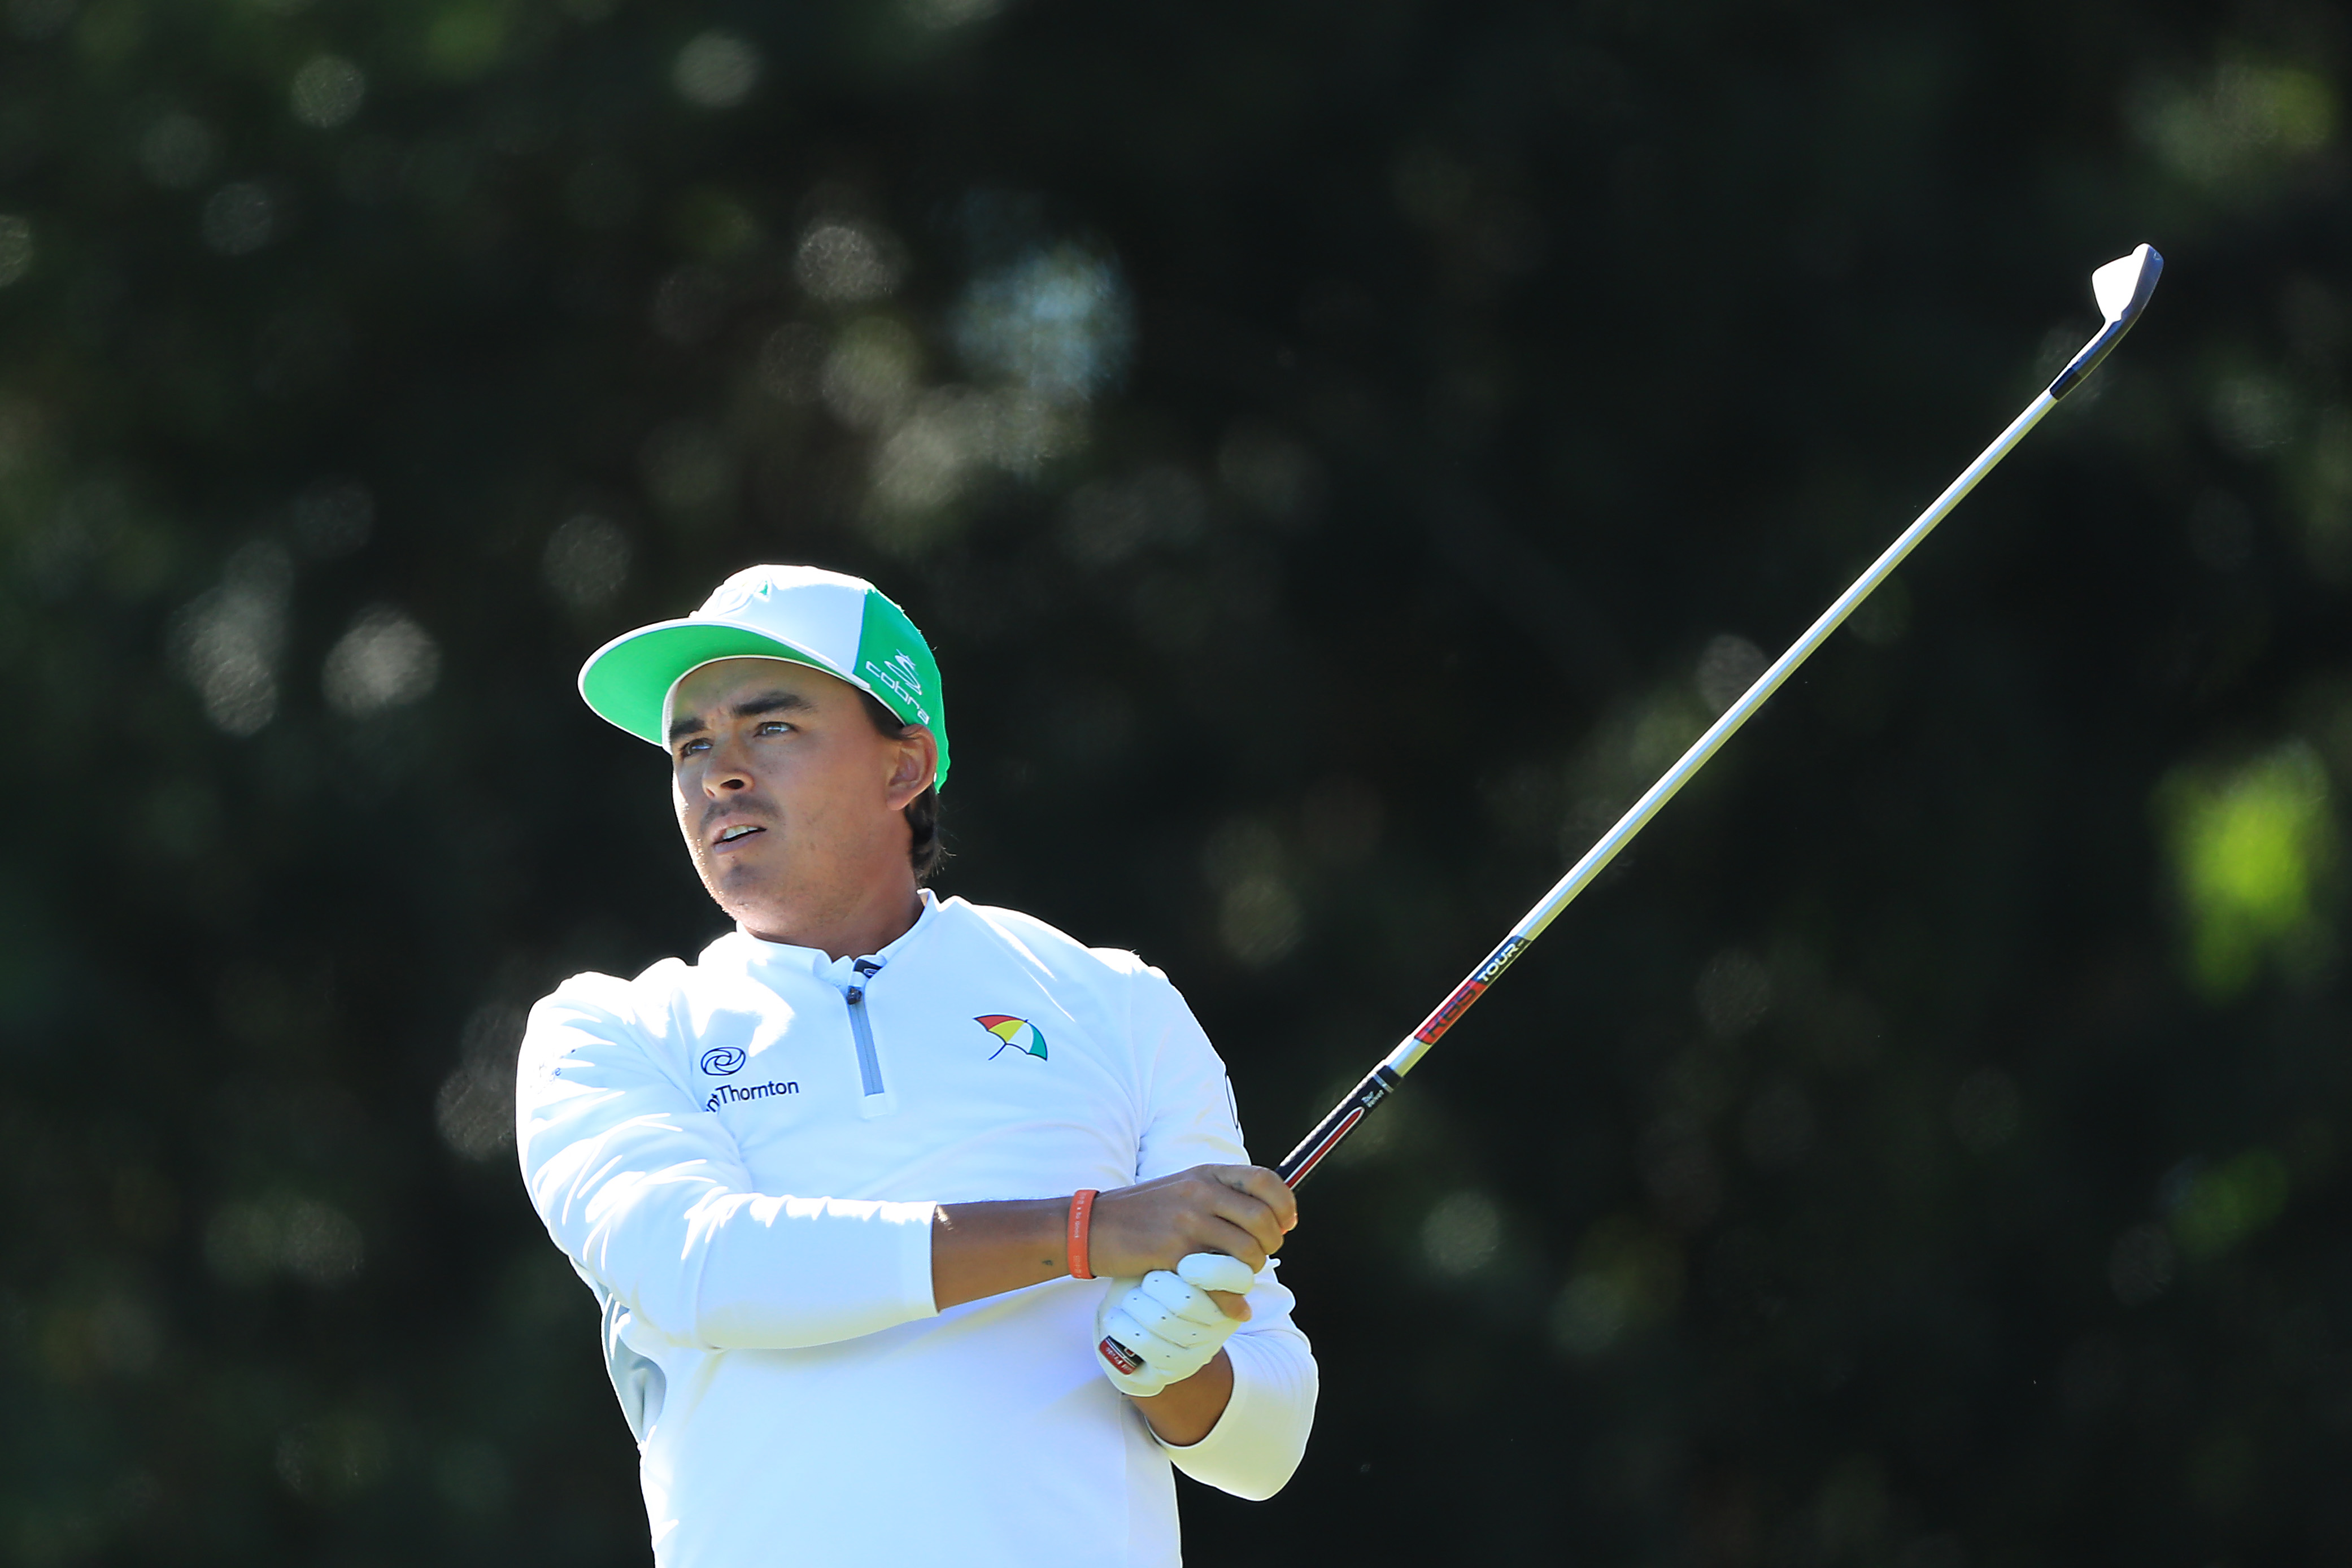 ORLANDO, FLORIDA - MARCH 07: Rickie Fowler of the United States plays his tee shot on the 17th hole during the first round of the Arnold Palmer Invitational Presented by Mastercard at the Bay Hill Club on March 07, 2019 in Orlando, Florida. (Photo by Sam Greenwood/Getty Images)